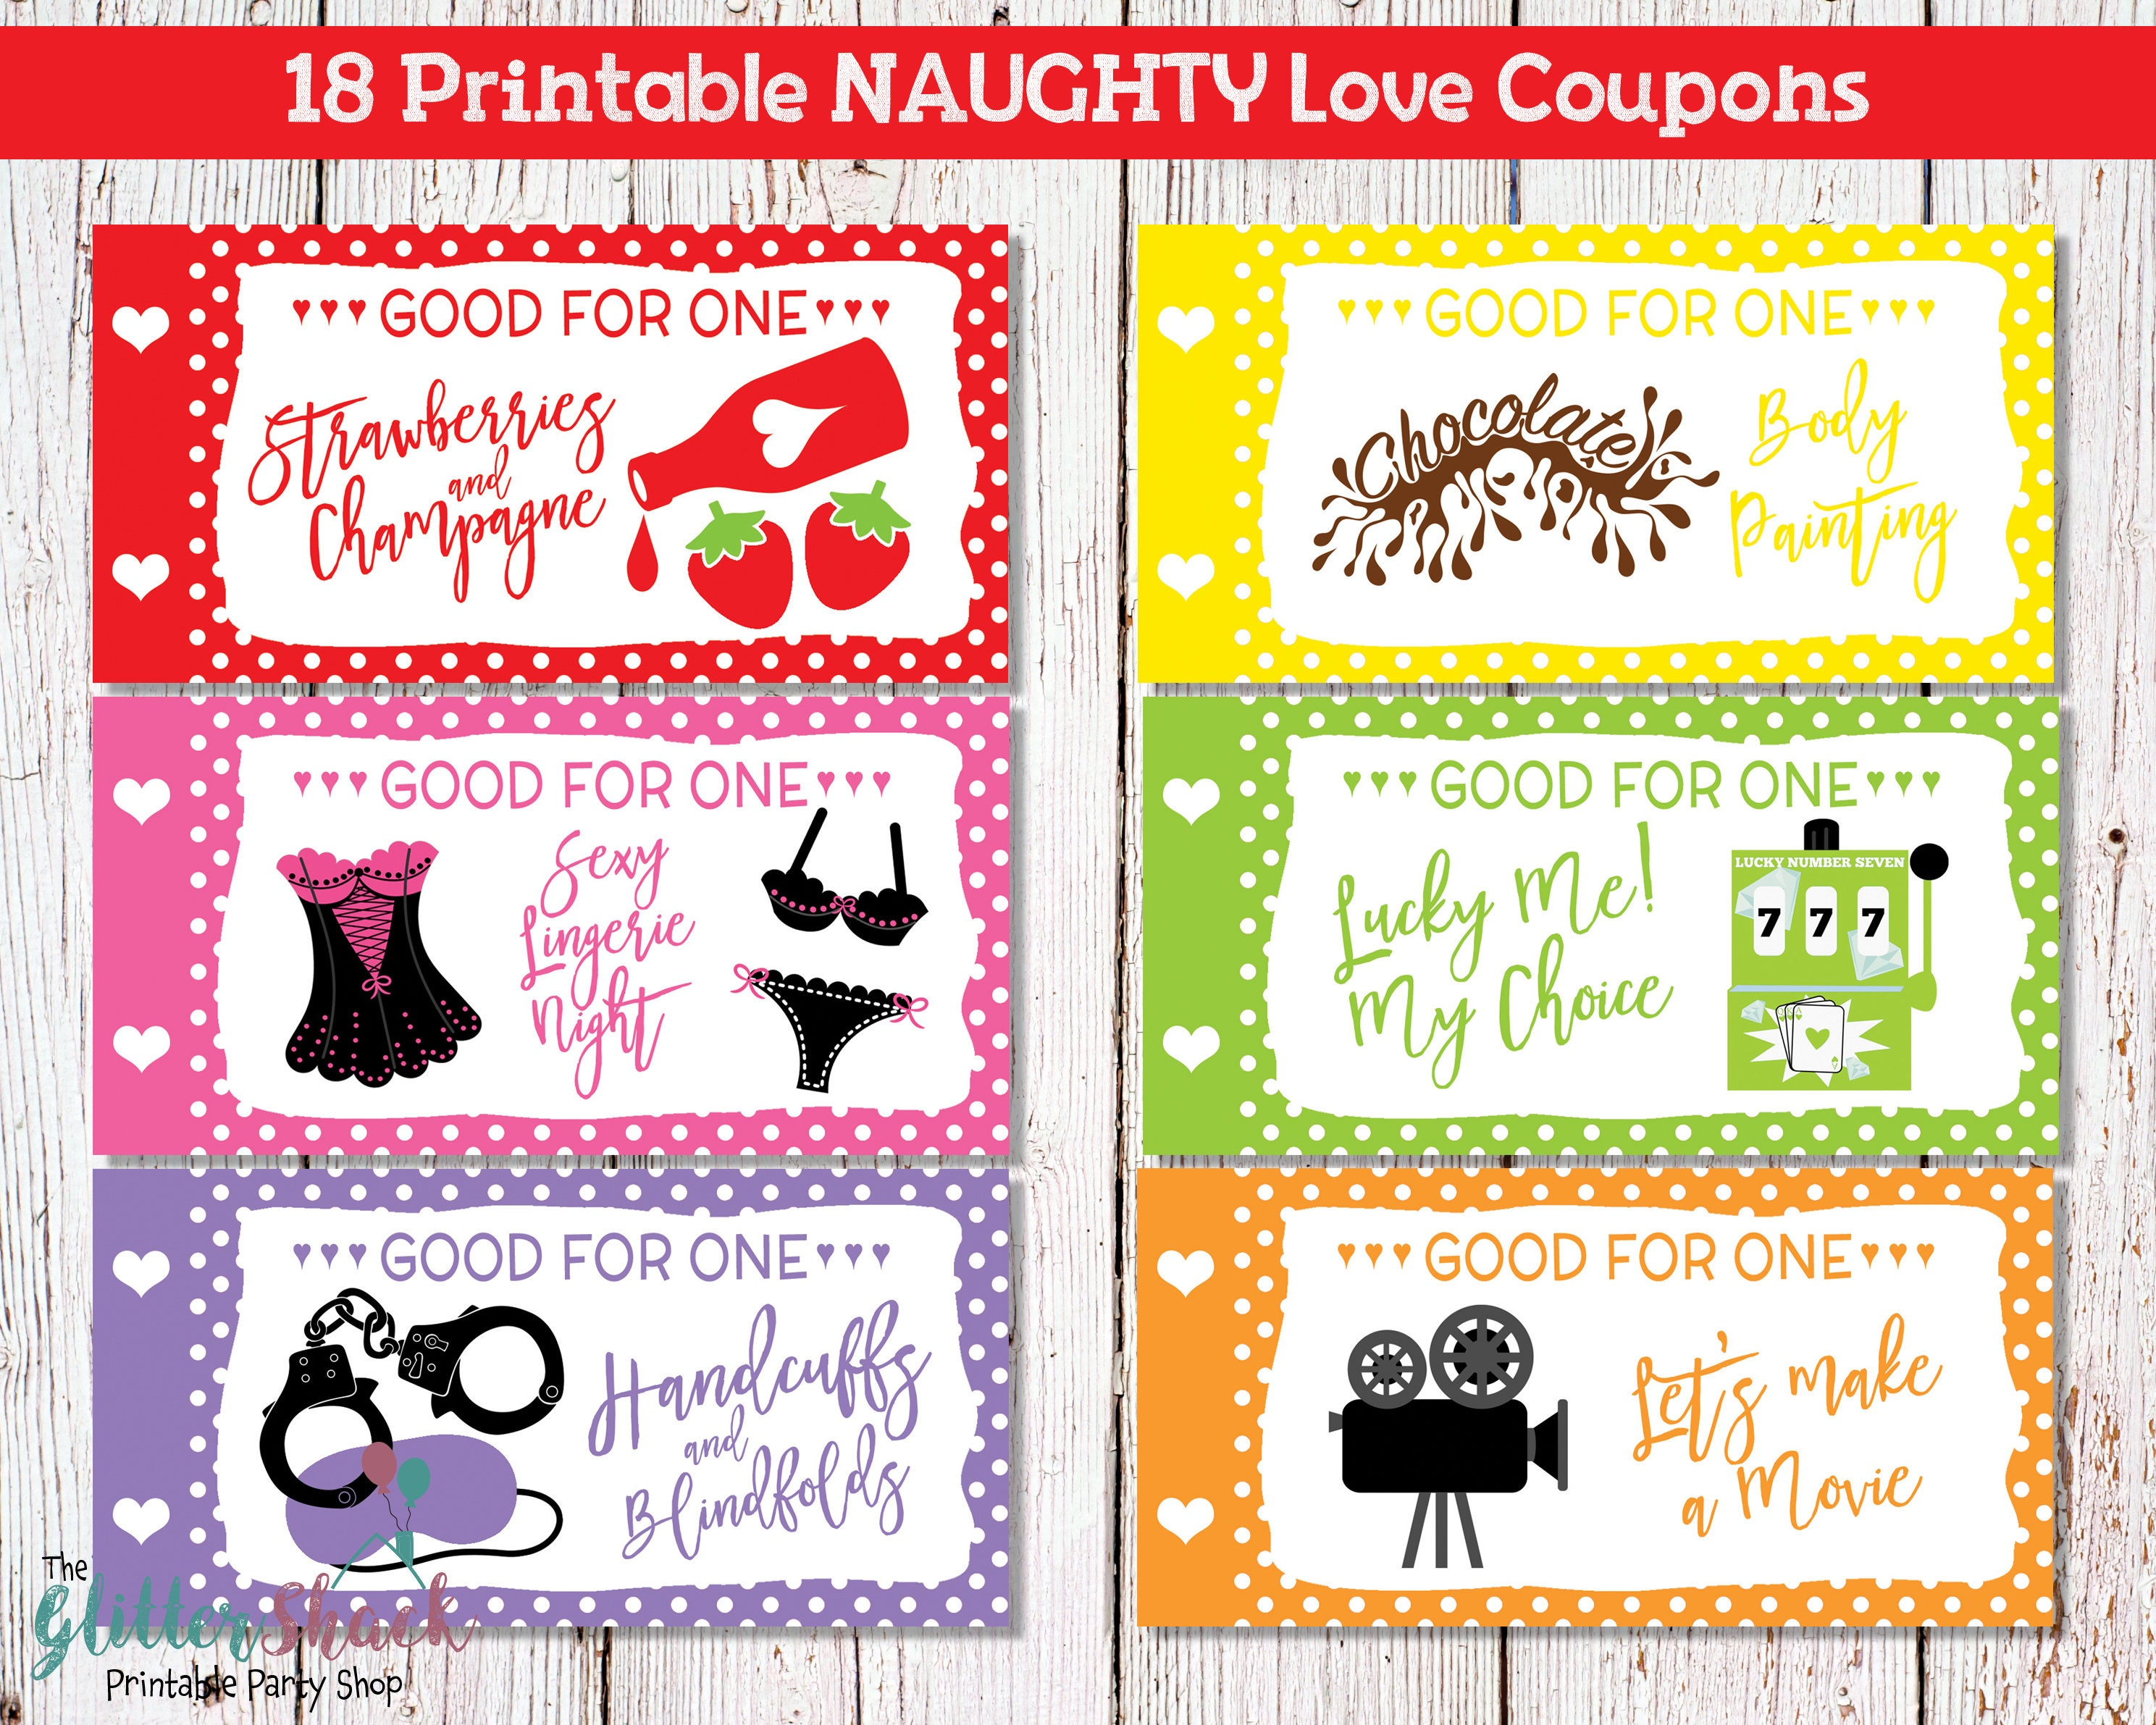 sex coupon template - printable naughty love coupons for men husband boyfriend sexy